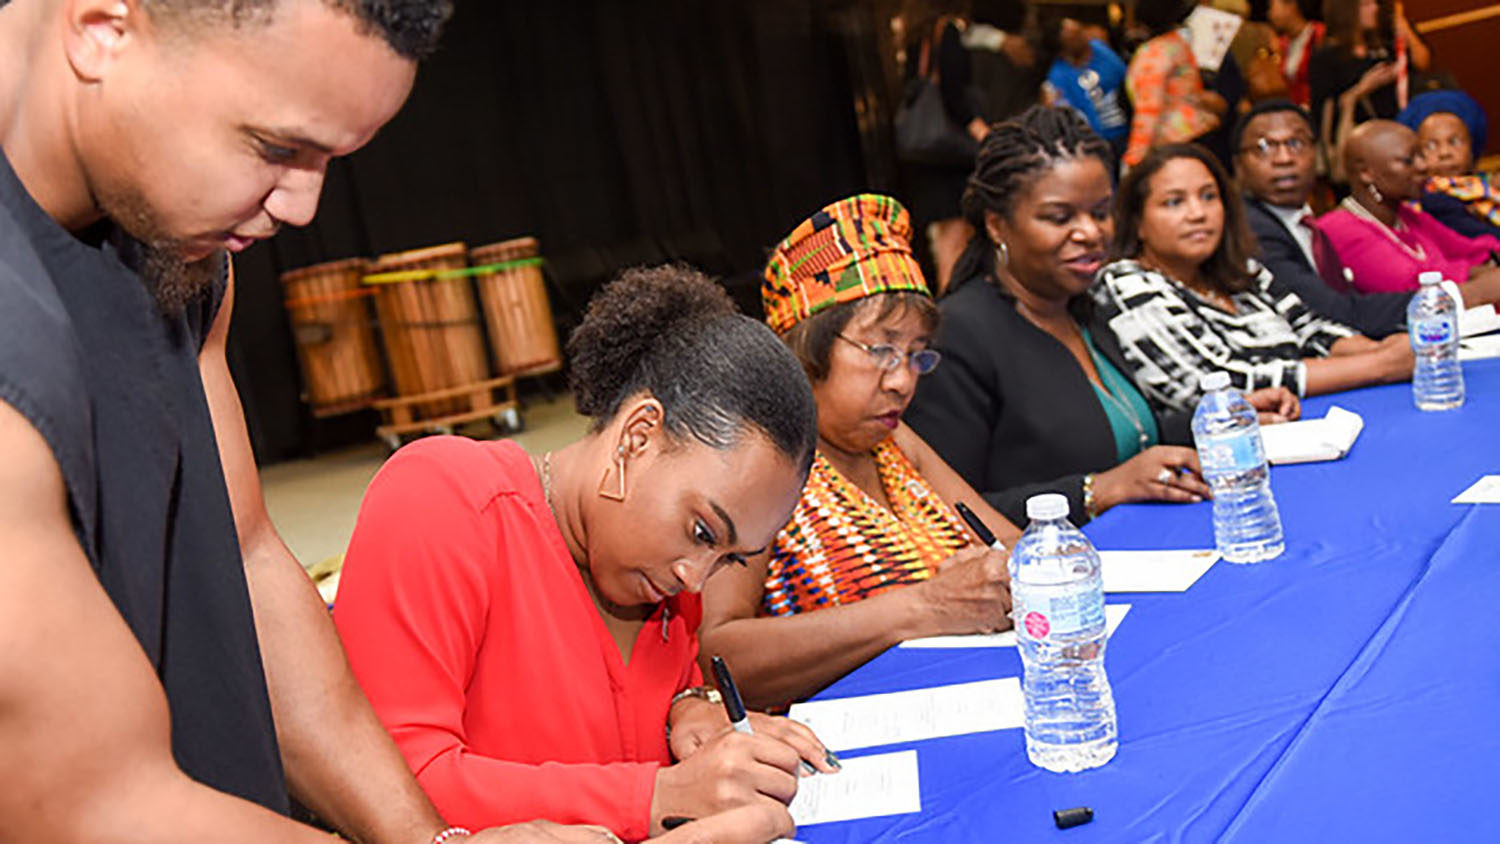 students and members of the community engaging at an event